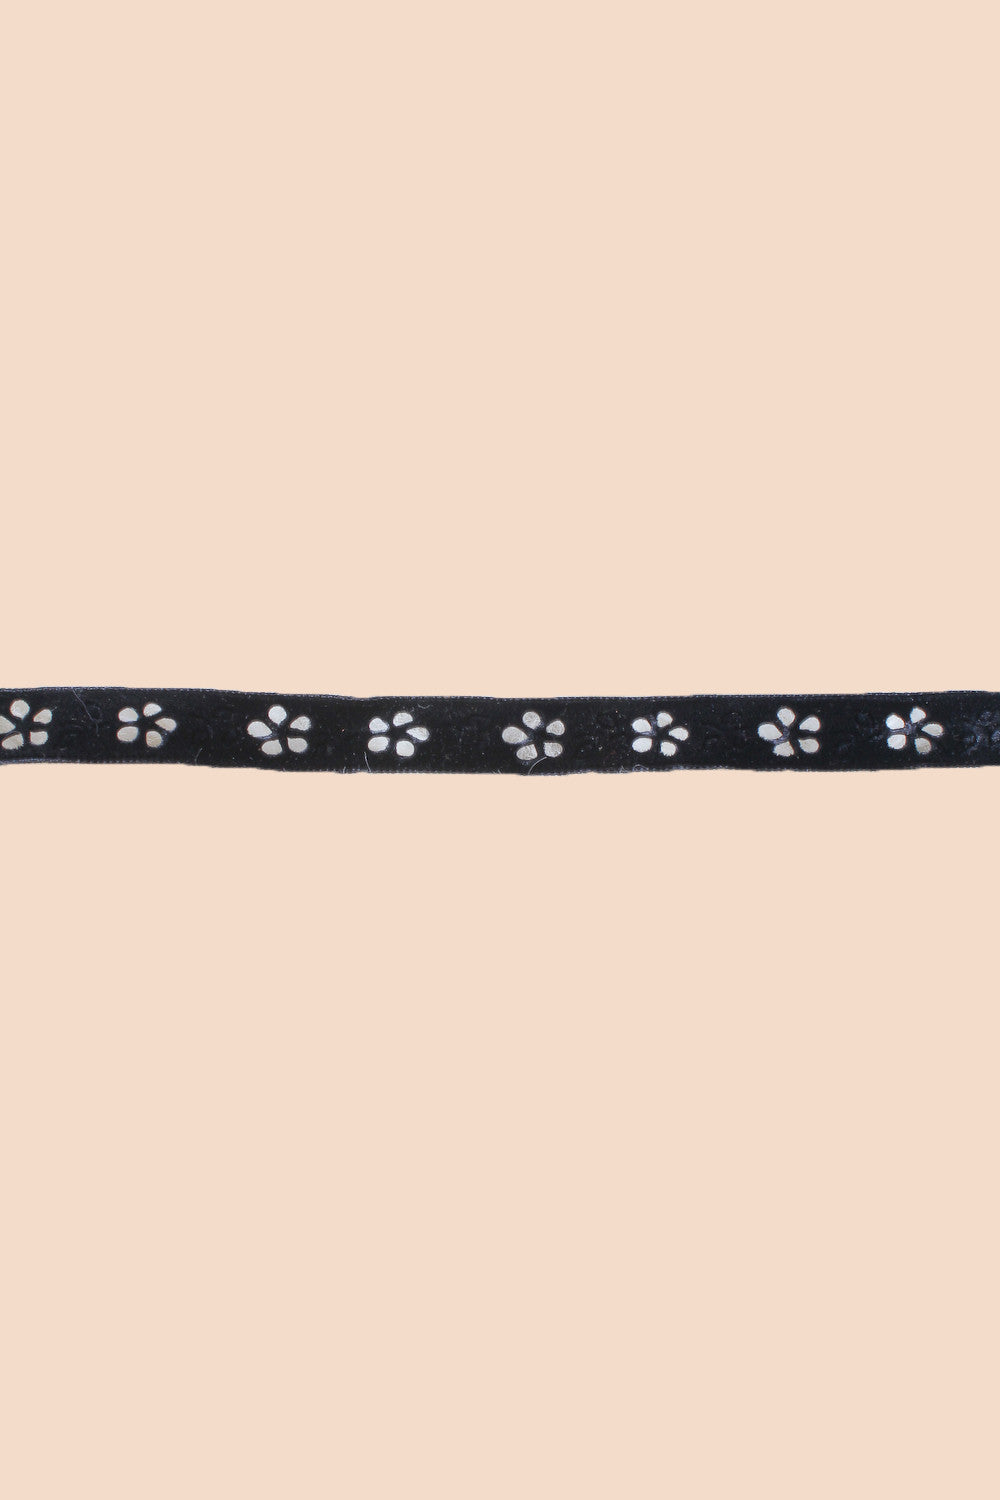 Flower Power Choker in Black